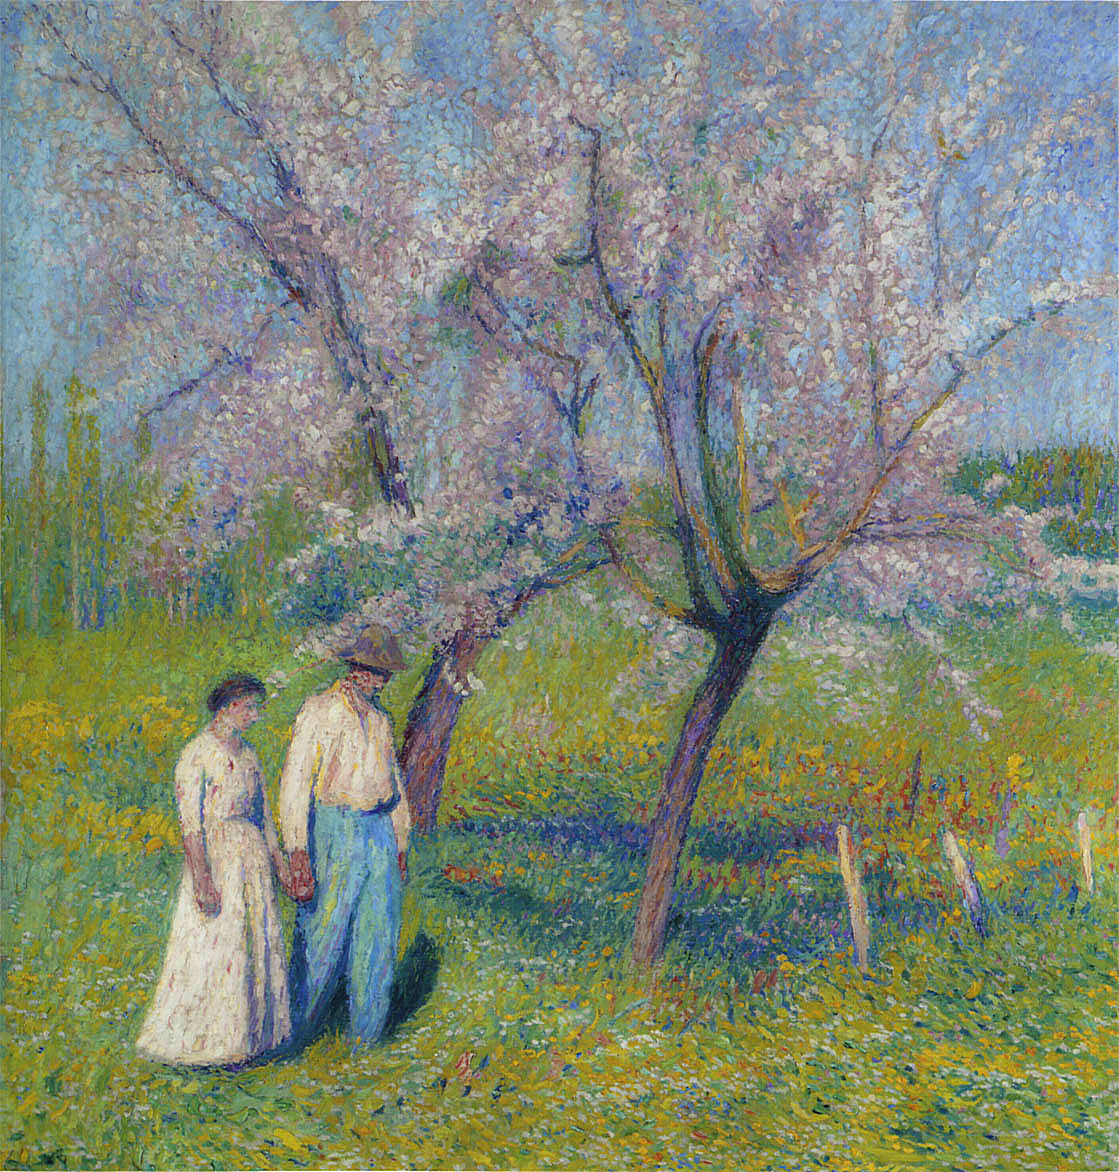 http://uploads7.wikipaintings.org/images/henri-martin/brides-walk-under-the-apple-trees.jpg